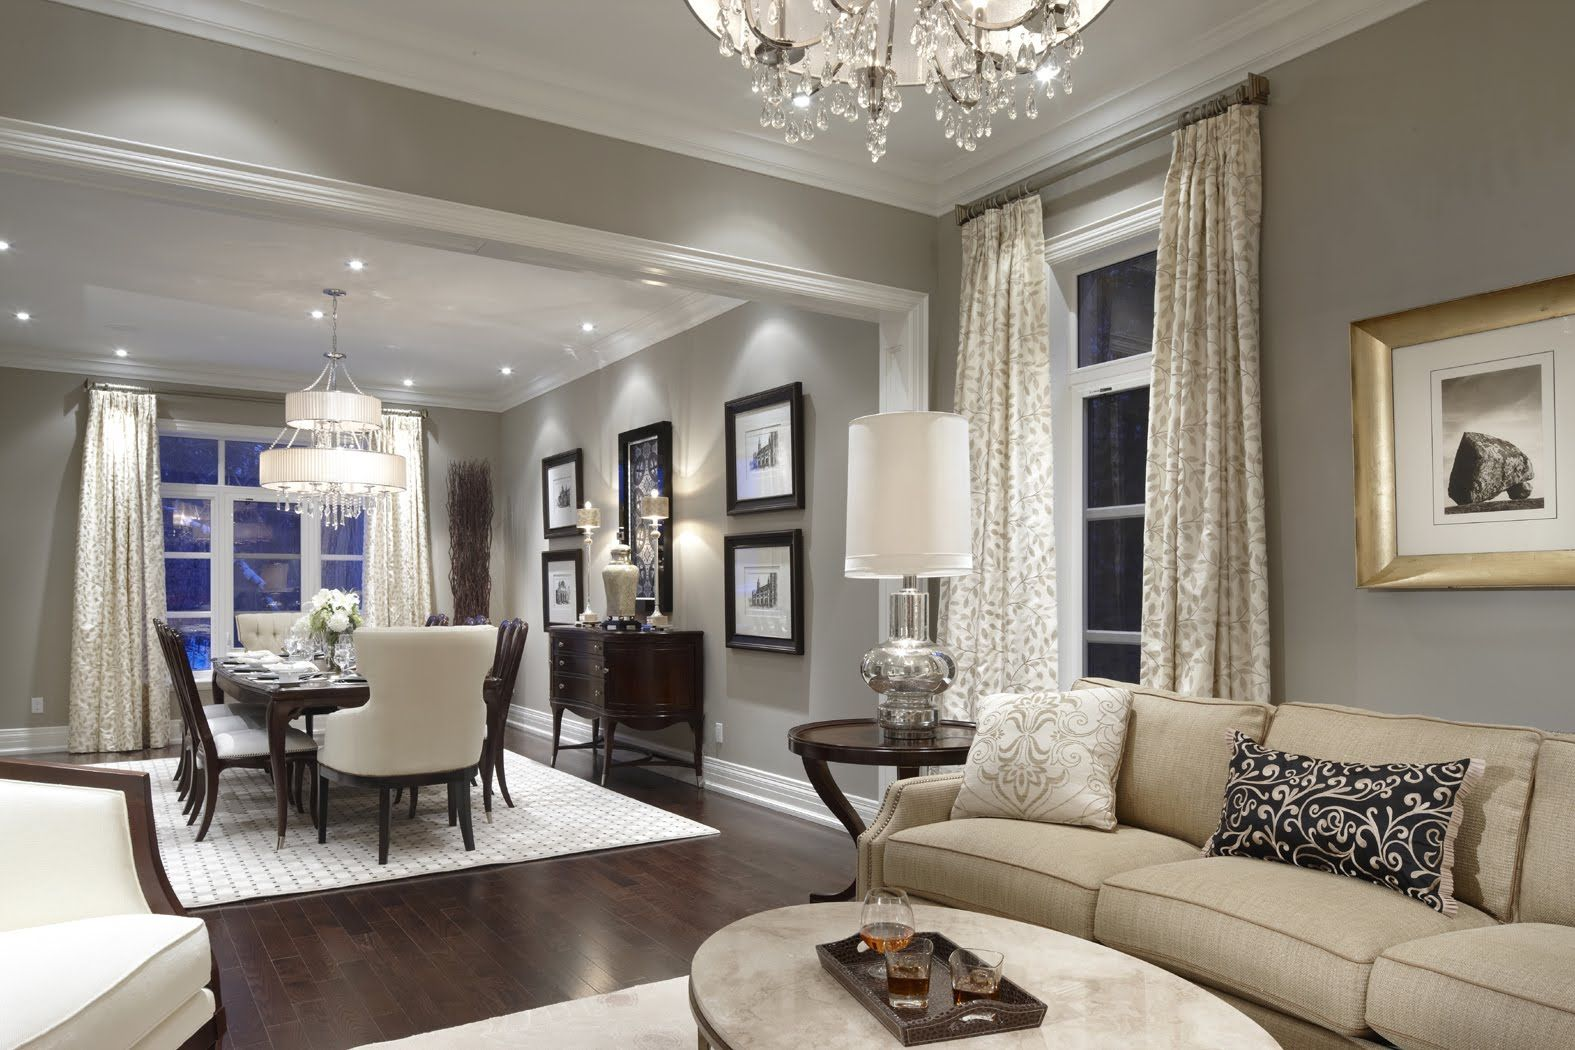 Benjamin moore colors for your living room decor - Dark hardwood floor living room ideas ...